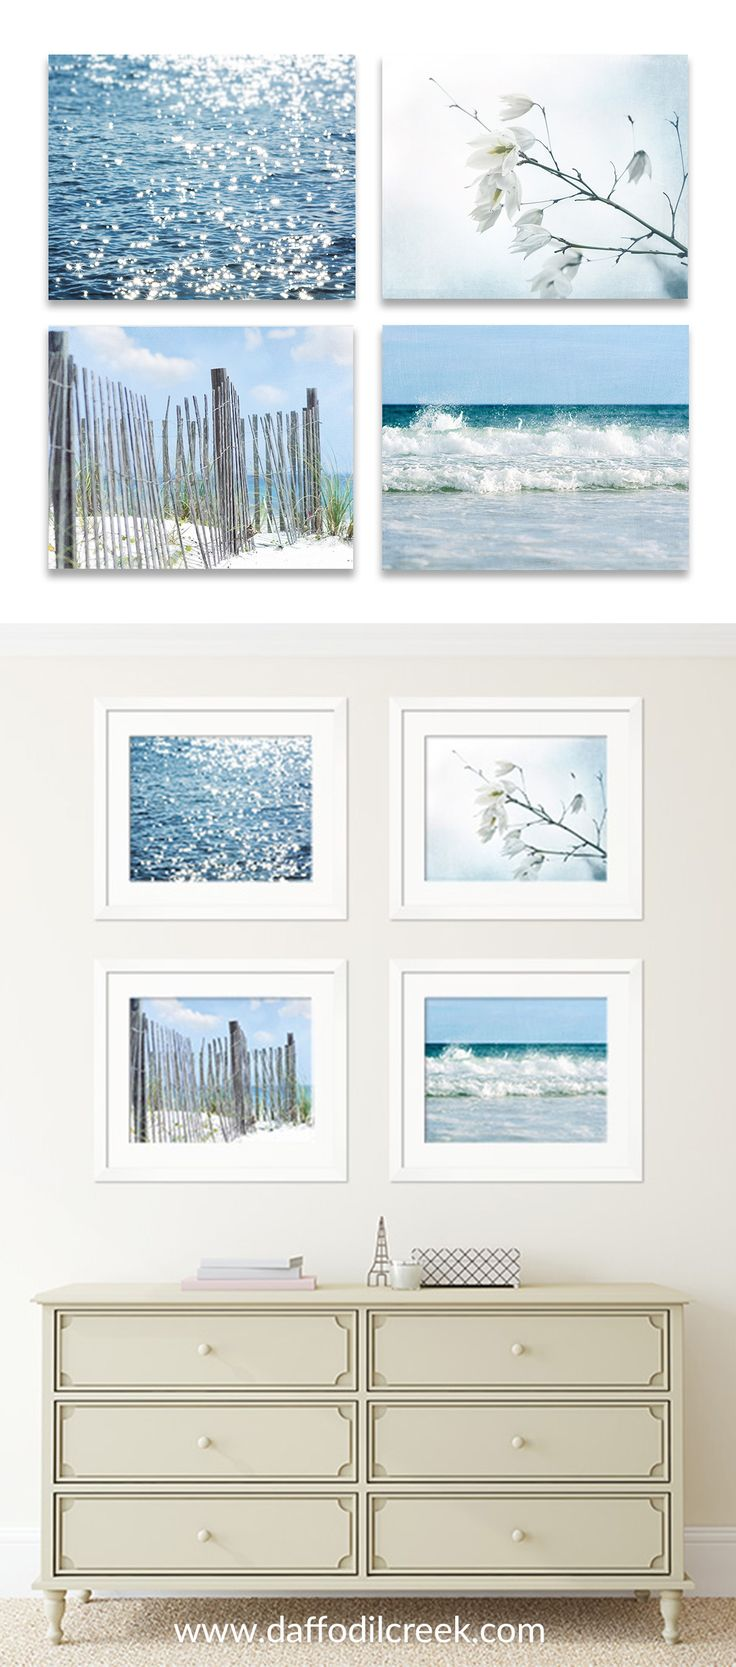 Rustic Coastal Gallery Wall - Beach Cottage Wall Décor - A fresh and sparkly take on beach décor! This set offour rusticblue toned coastal prints will make a perfectly fresh statement for your gallery wall!